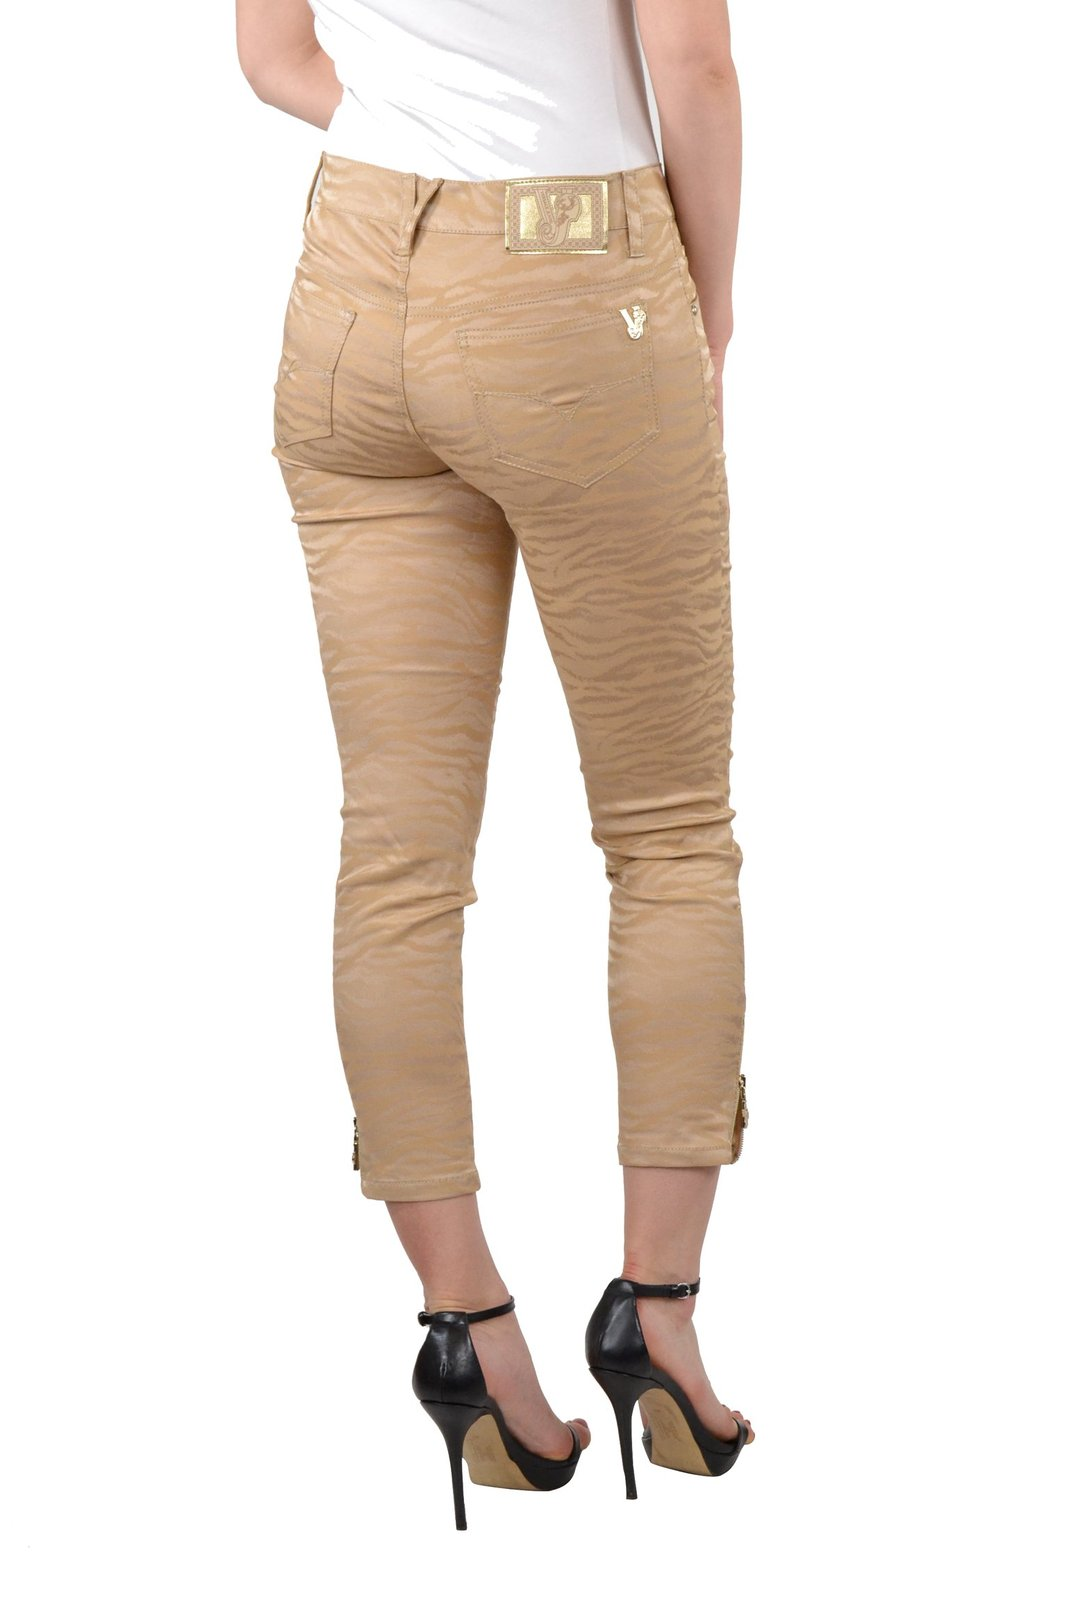 Shop our entire selection of women's scrubs pants. From cargo to skinny scrub pants, you'll find the perfect fit and functionality for your style. Shop our entire selection of women's scrubs pants. From cargo to skinny scrub pants, you'll find the perfect fit and functionality for your style. Skinny Leg. Slim through the hip and thigh, with.